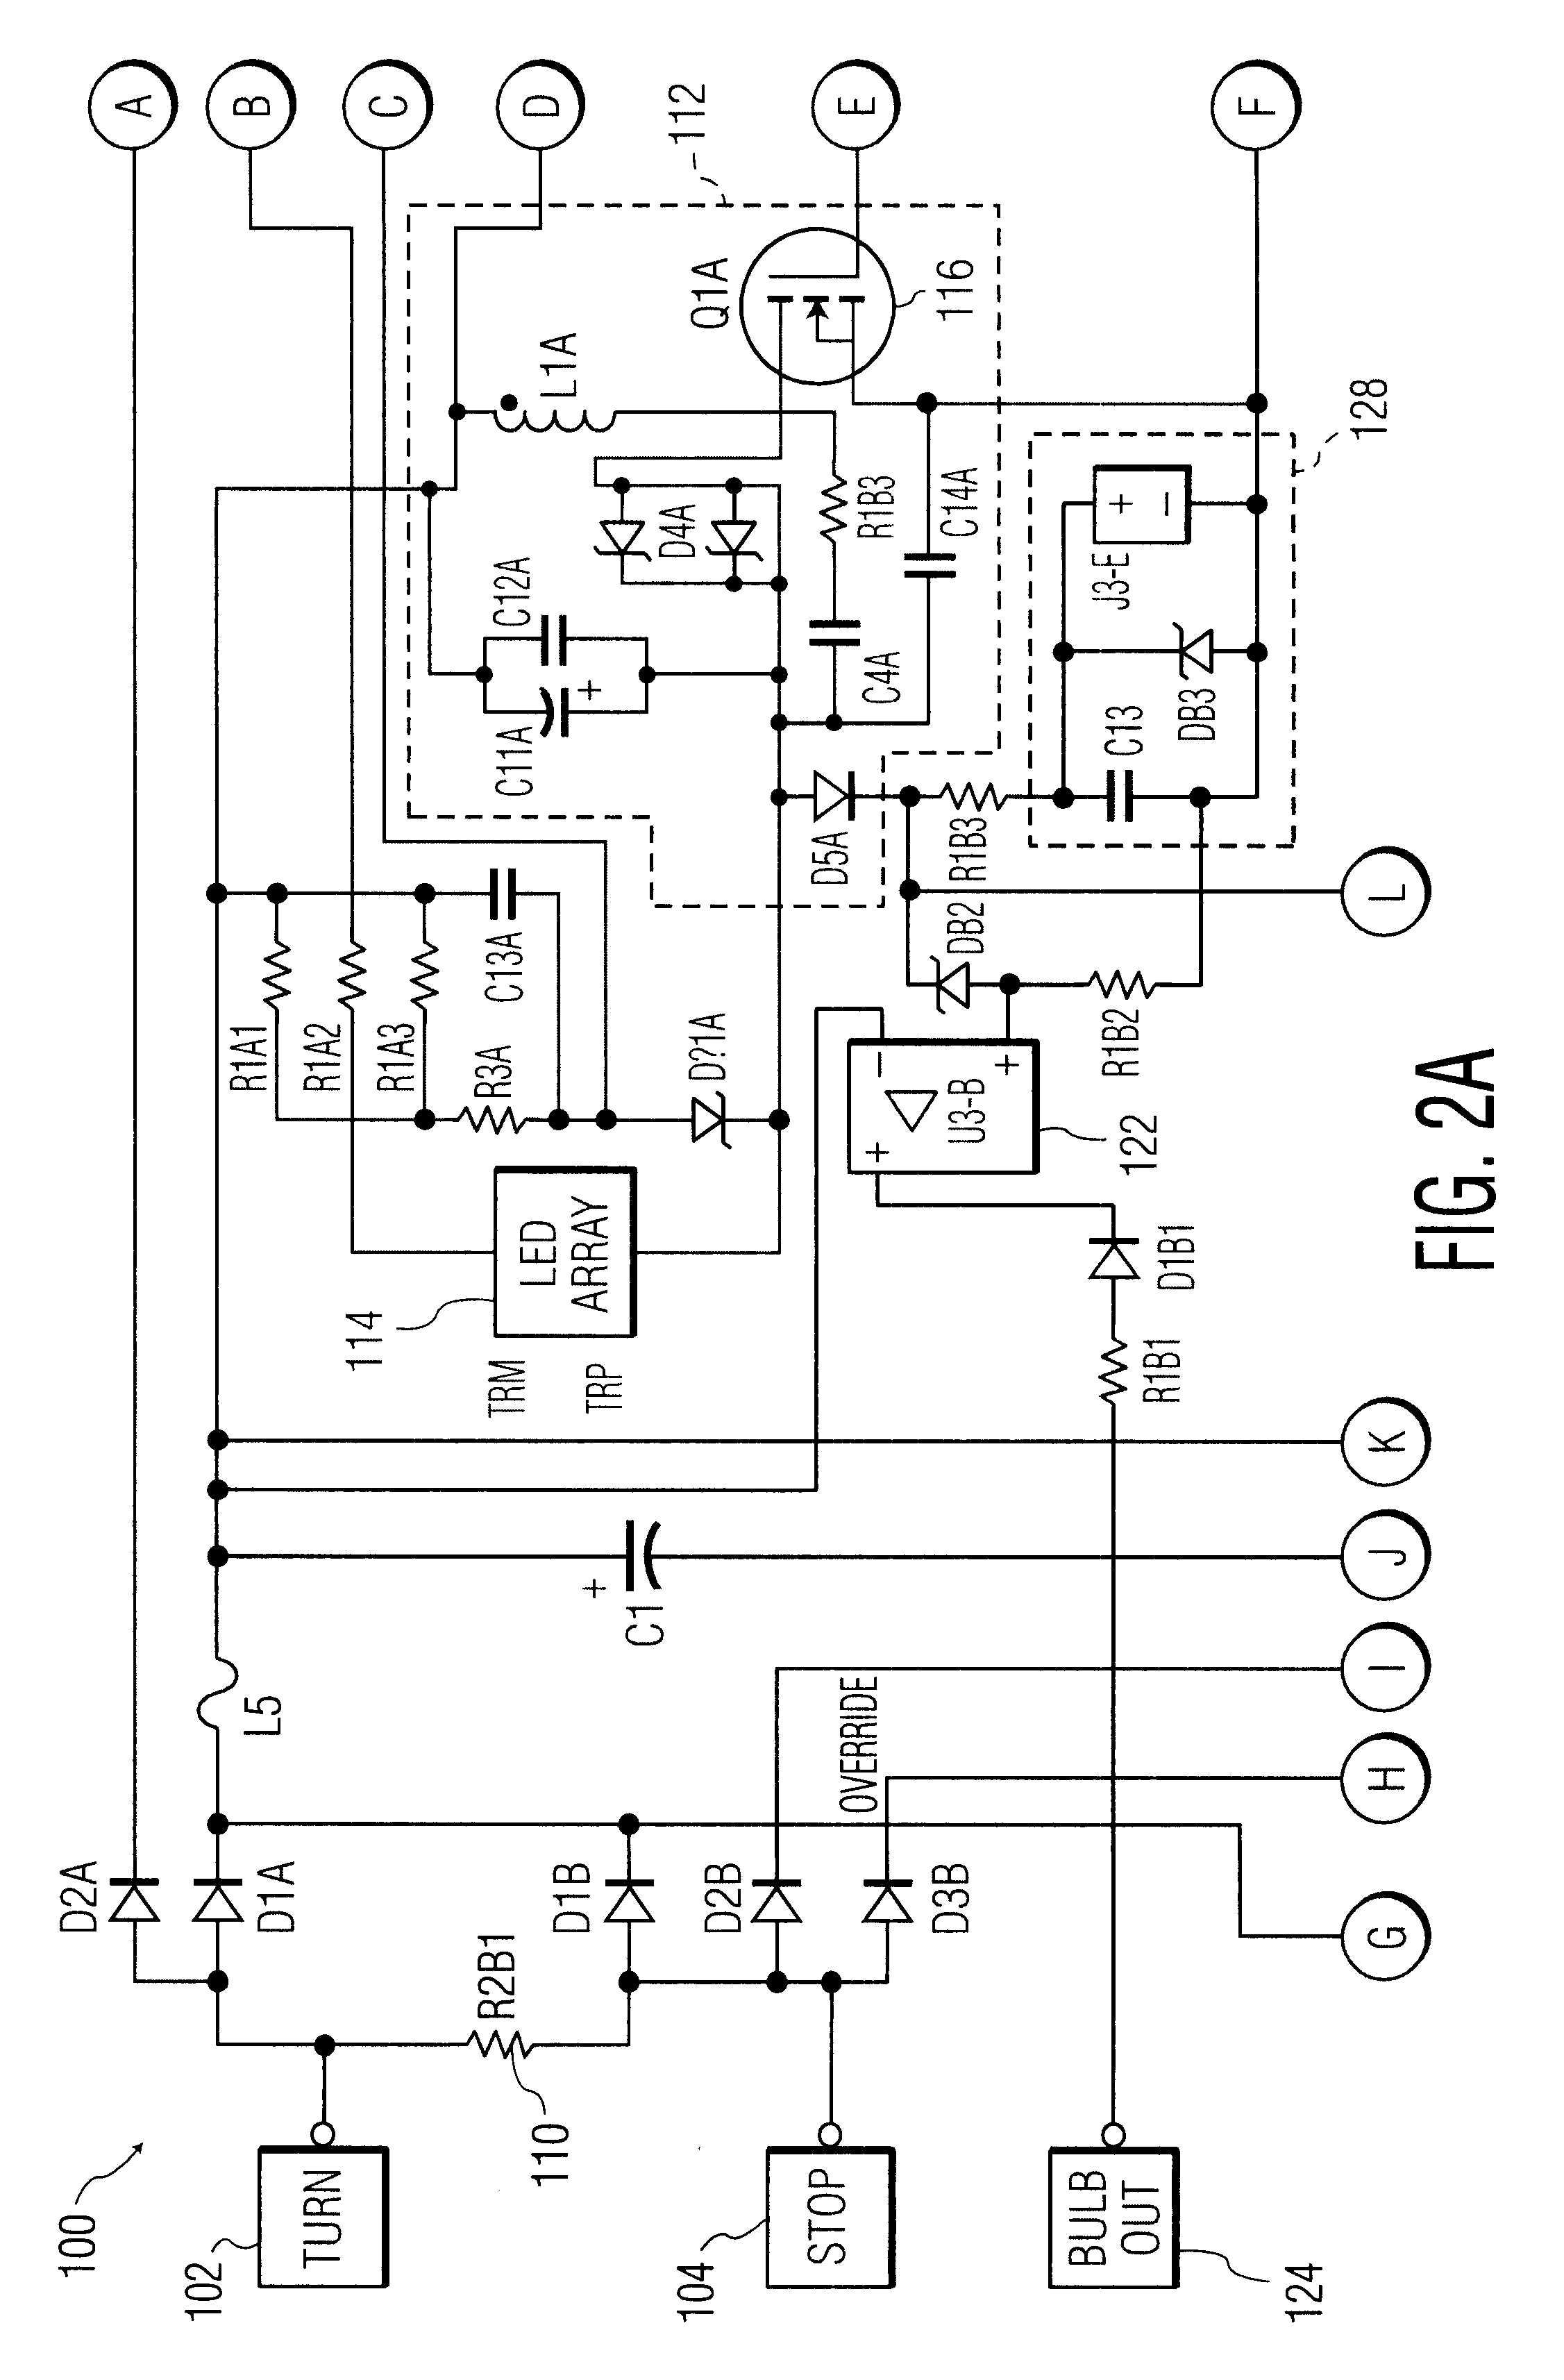 patent us6586890 led driver circuit pwm output google patents patent drawing